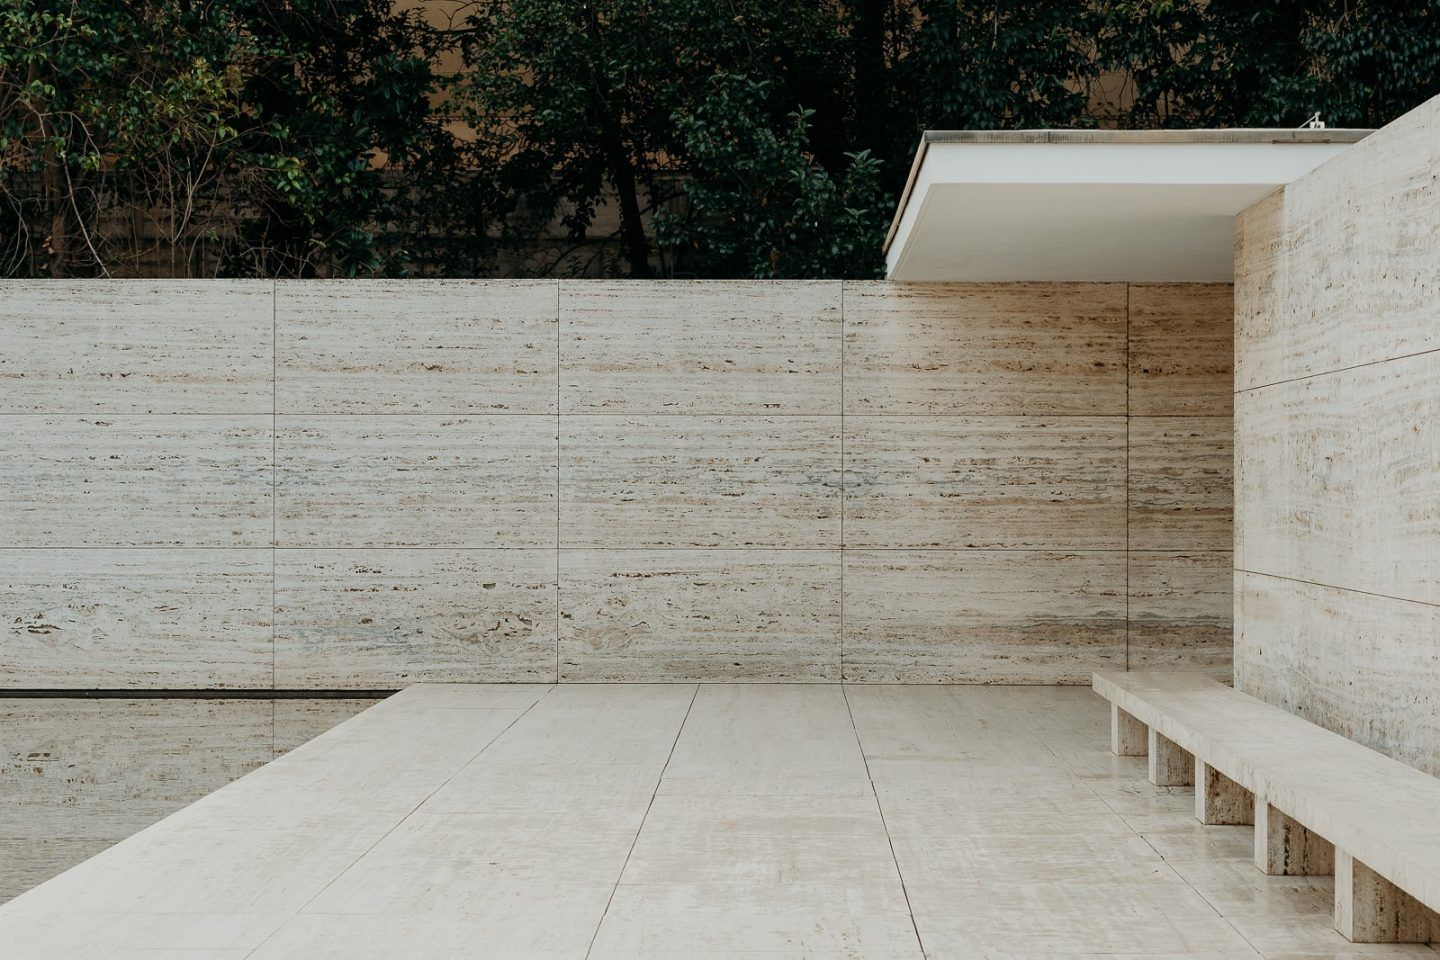 IGNANT-Architecture-Barcelona-Pavilion-Ludwig-Mies-Van-Der-Rohe-Maciej-Jezyk-03